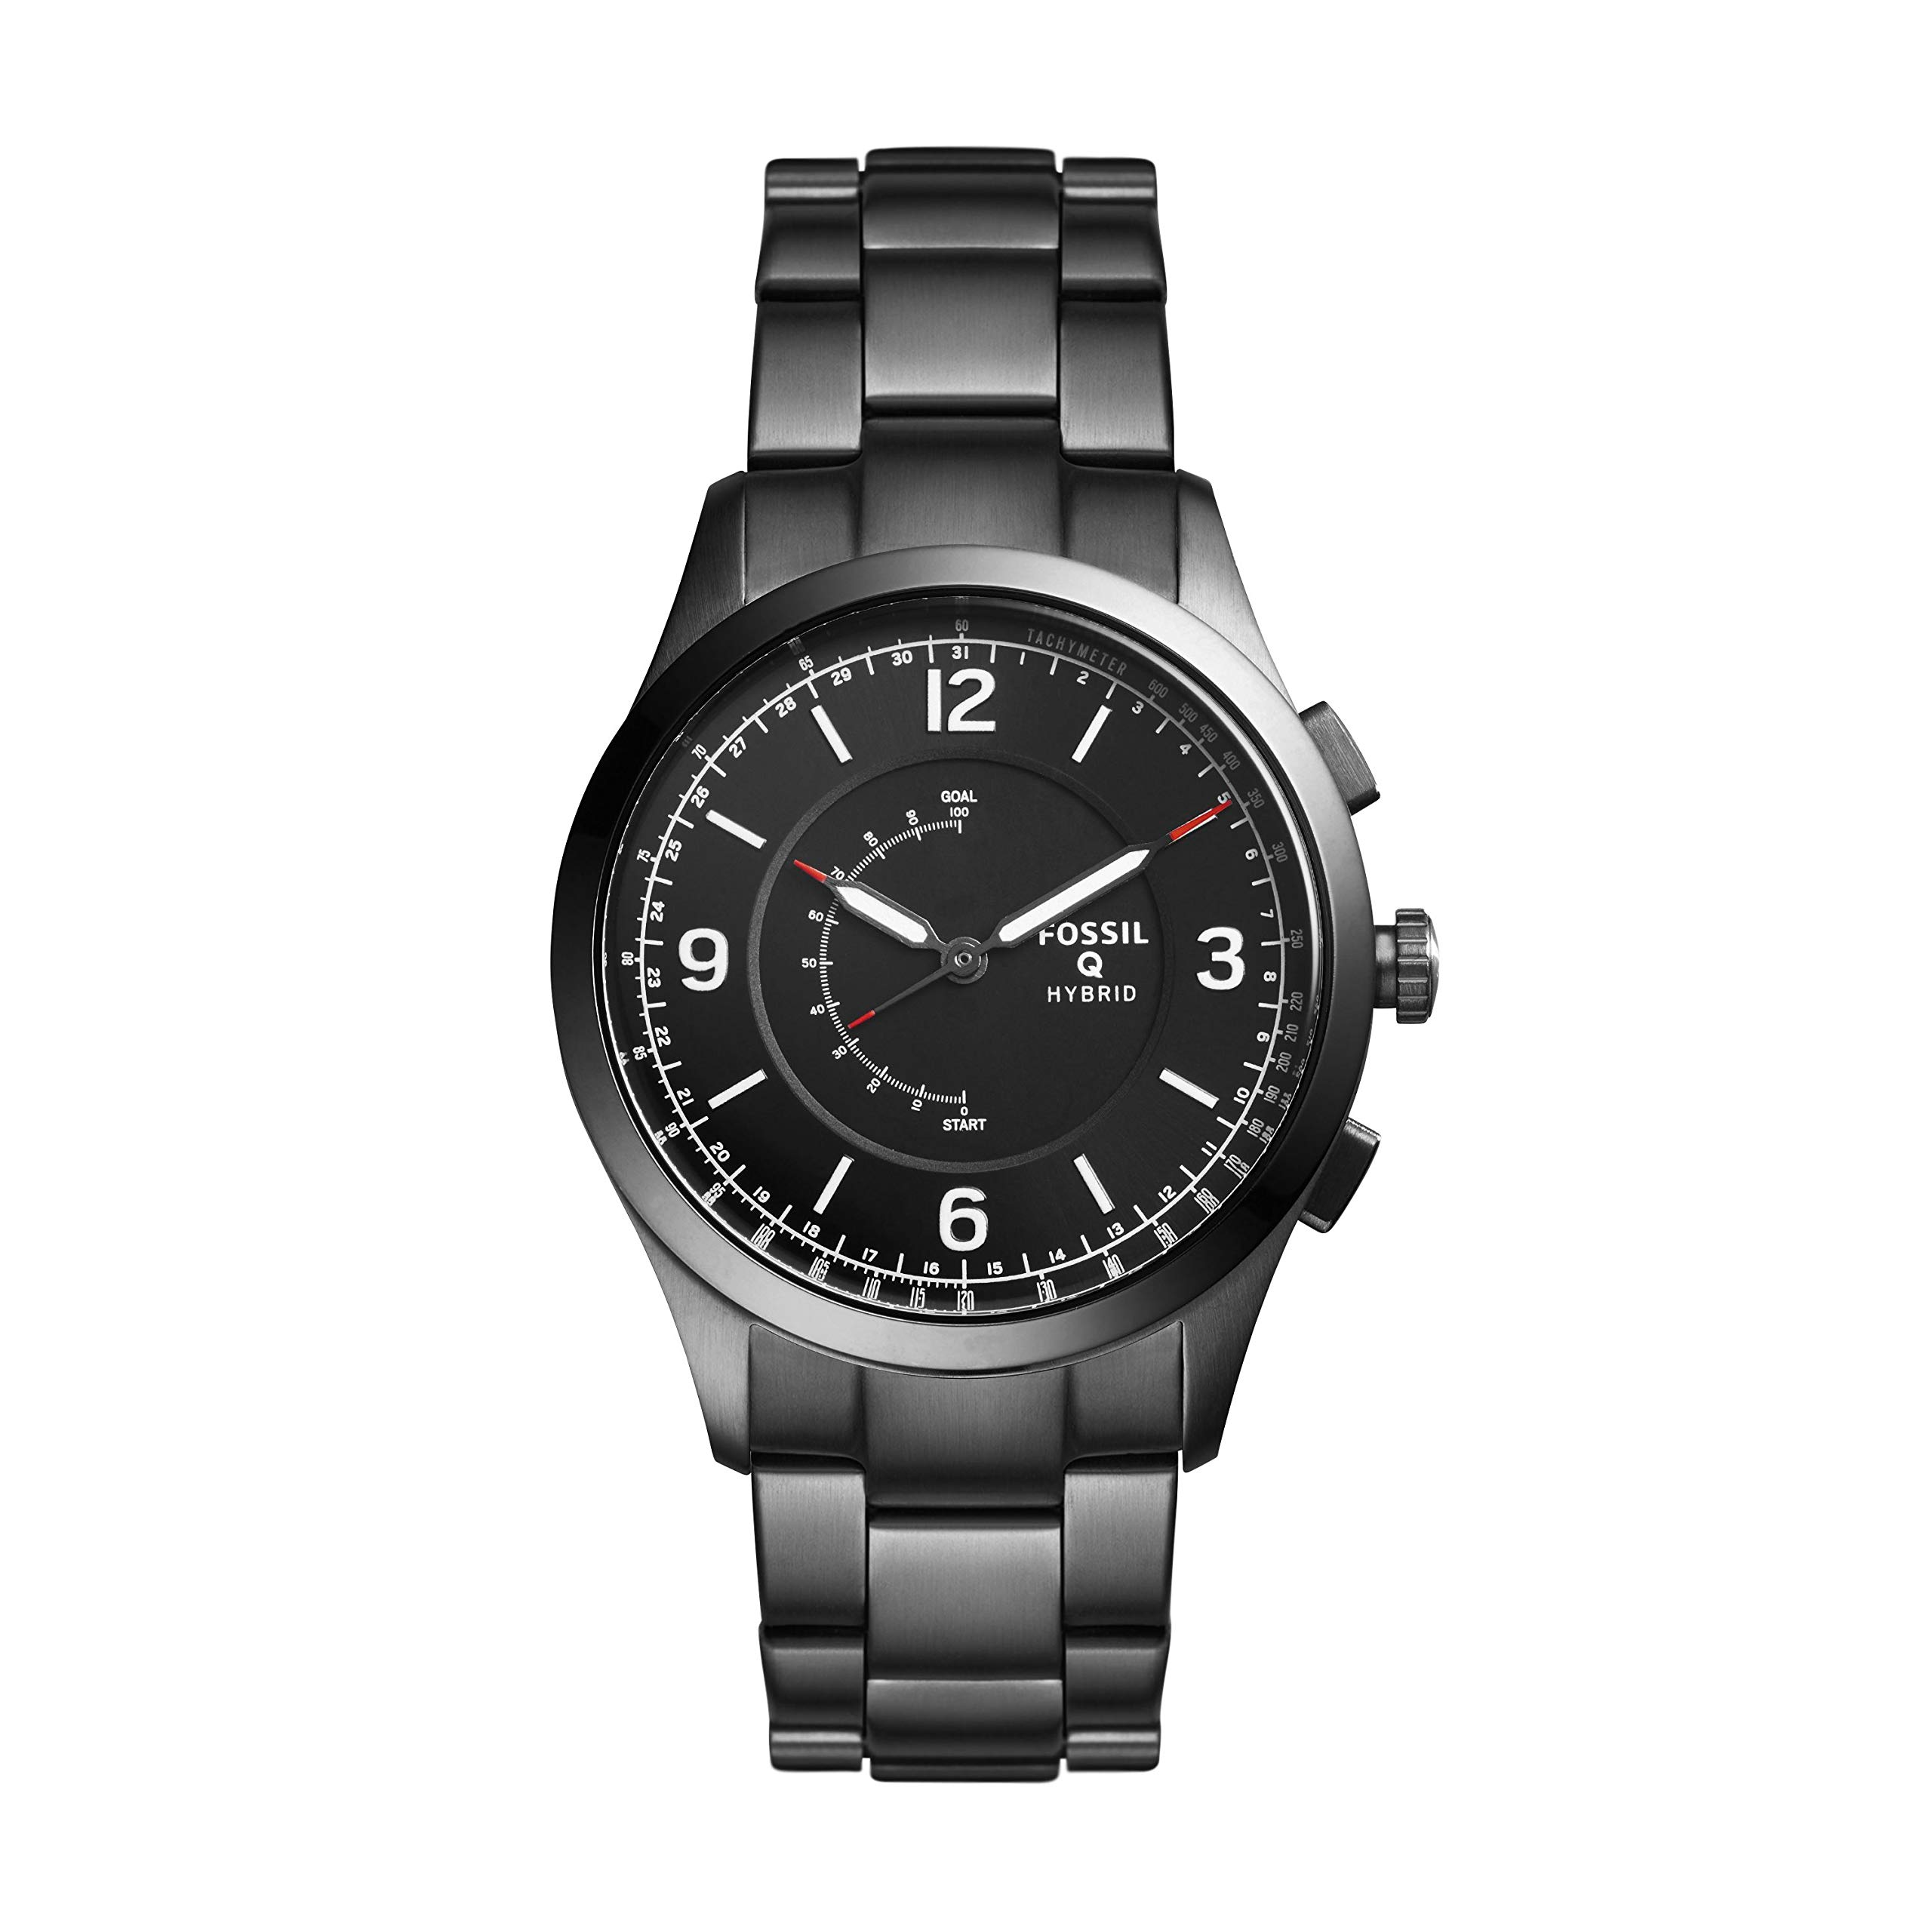 Fossil Hybrid Smartwatch - Q Activist Smoke Stainless Steel FTW1207 by Fossil